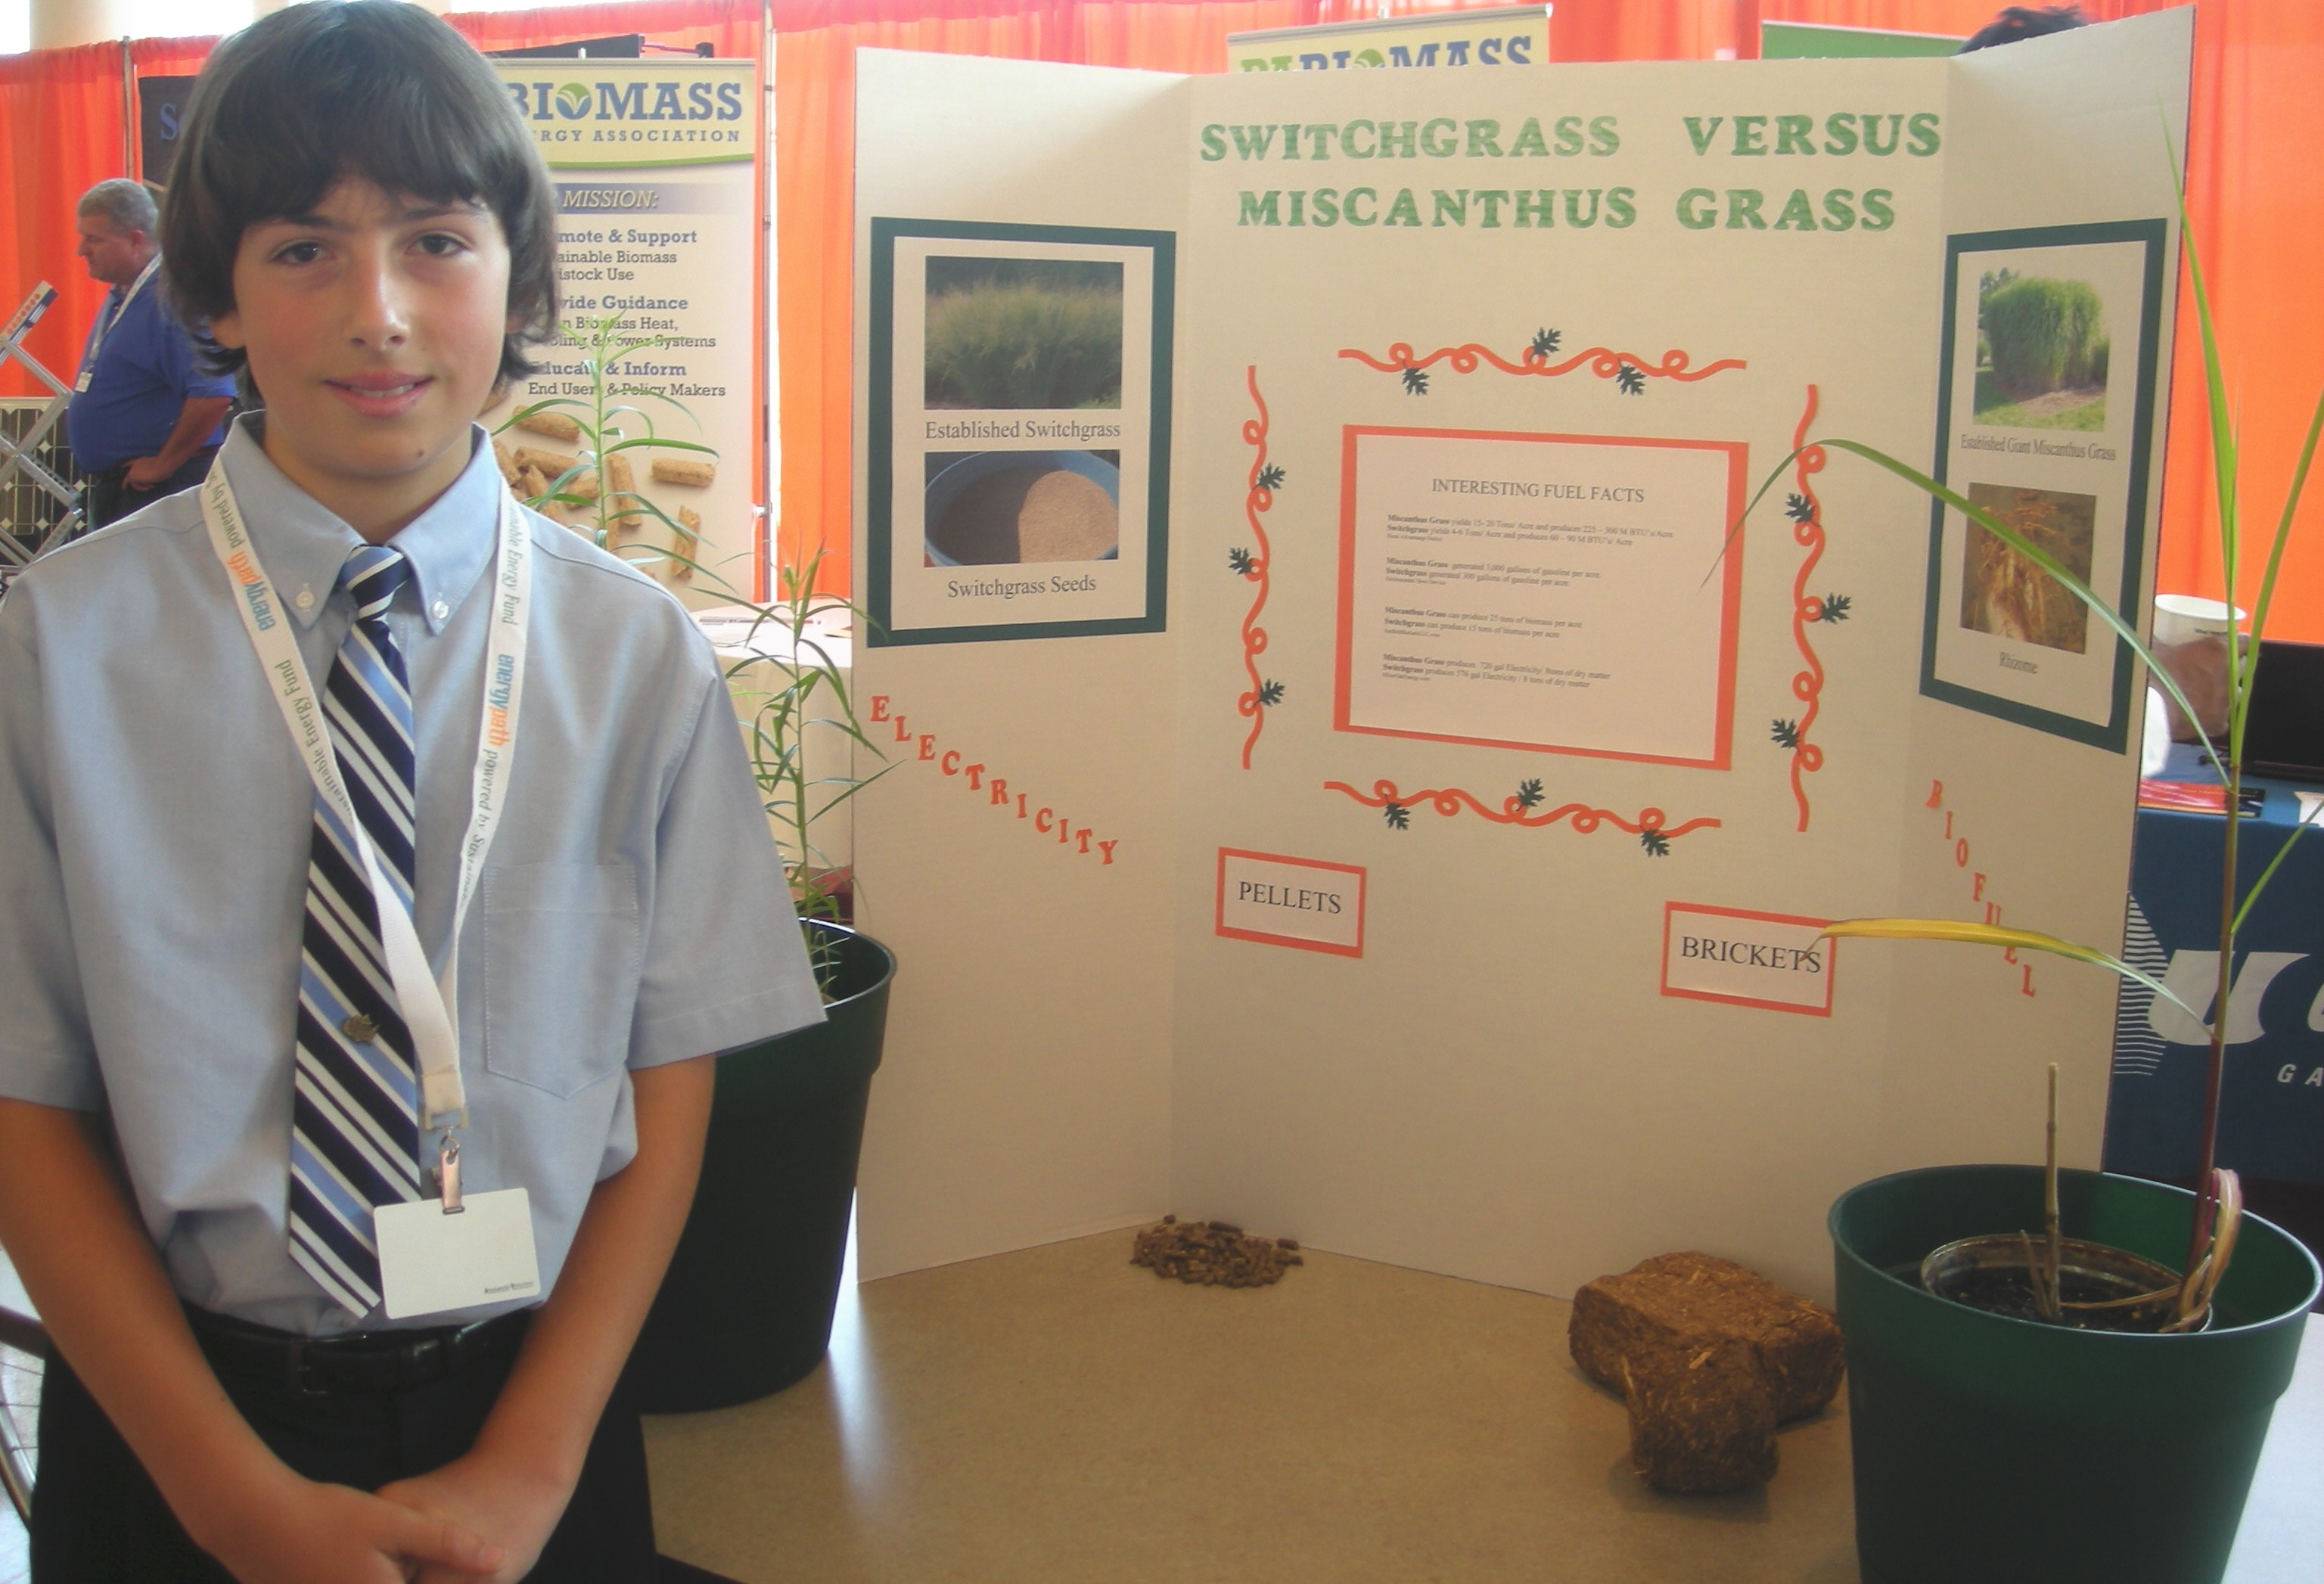 advanced biofuels usa student biofuels projects at energypath 7th grader josh danna his switchgrass vs miscanthus project